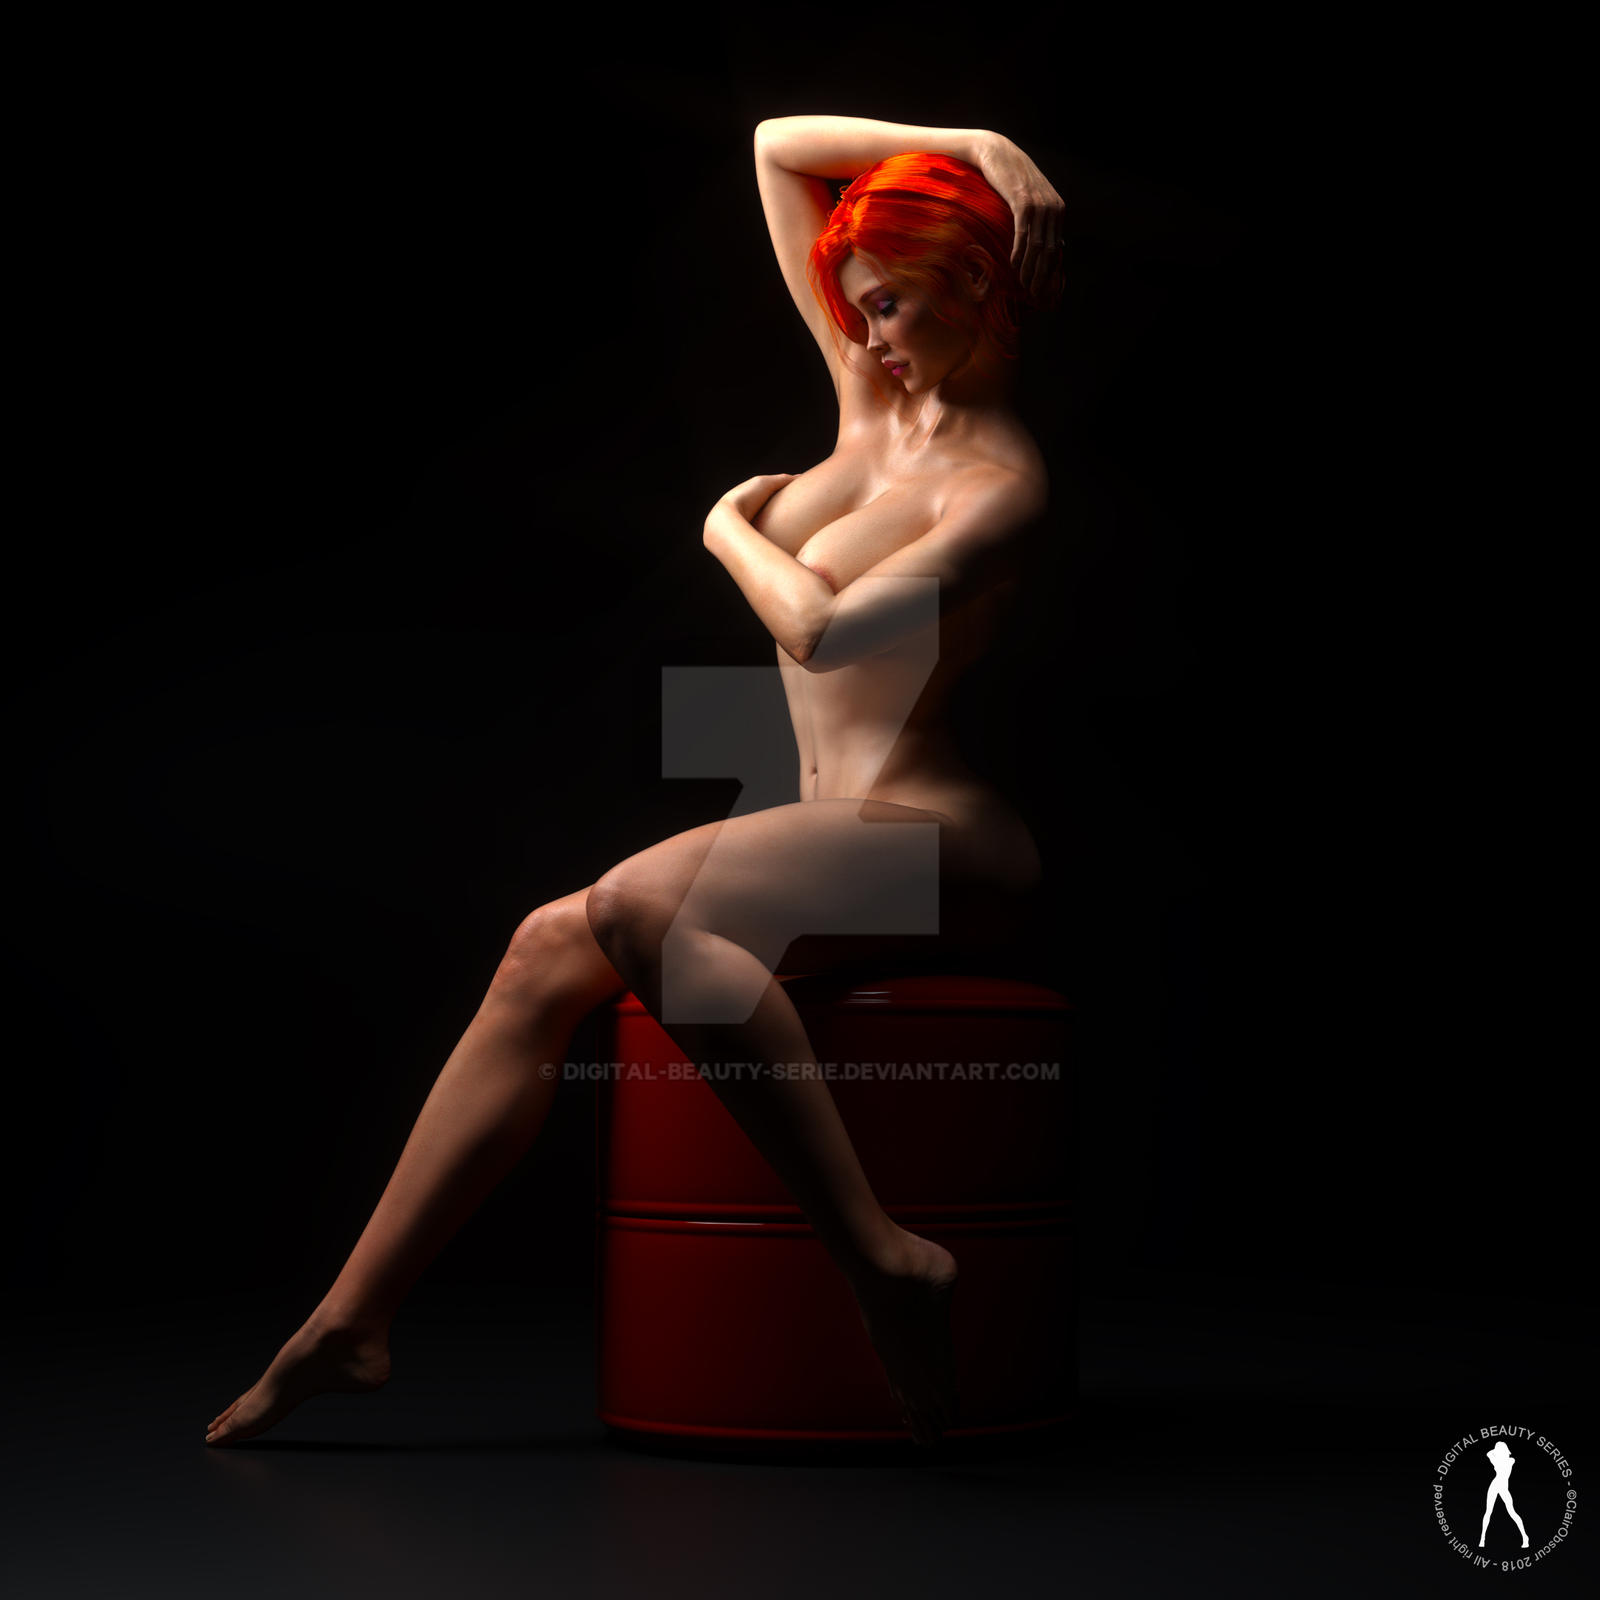 Digital Beauty Series - ClairObscur (Nov17) by Digital-Beauty-Serie